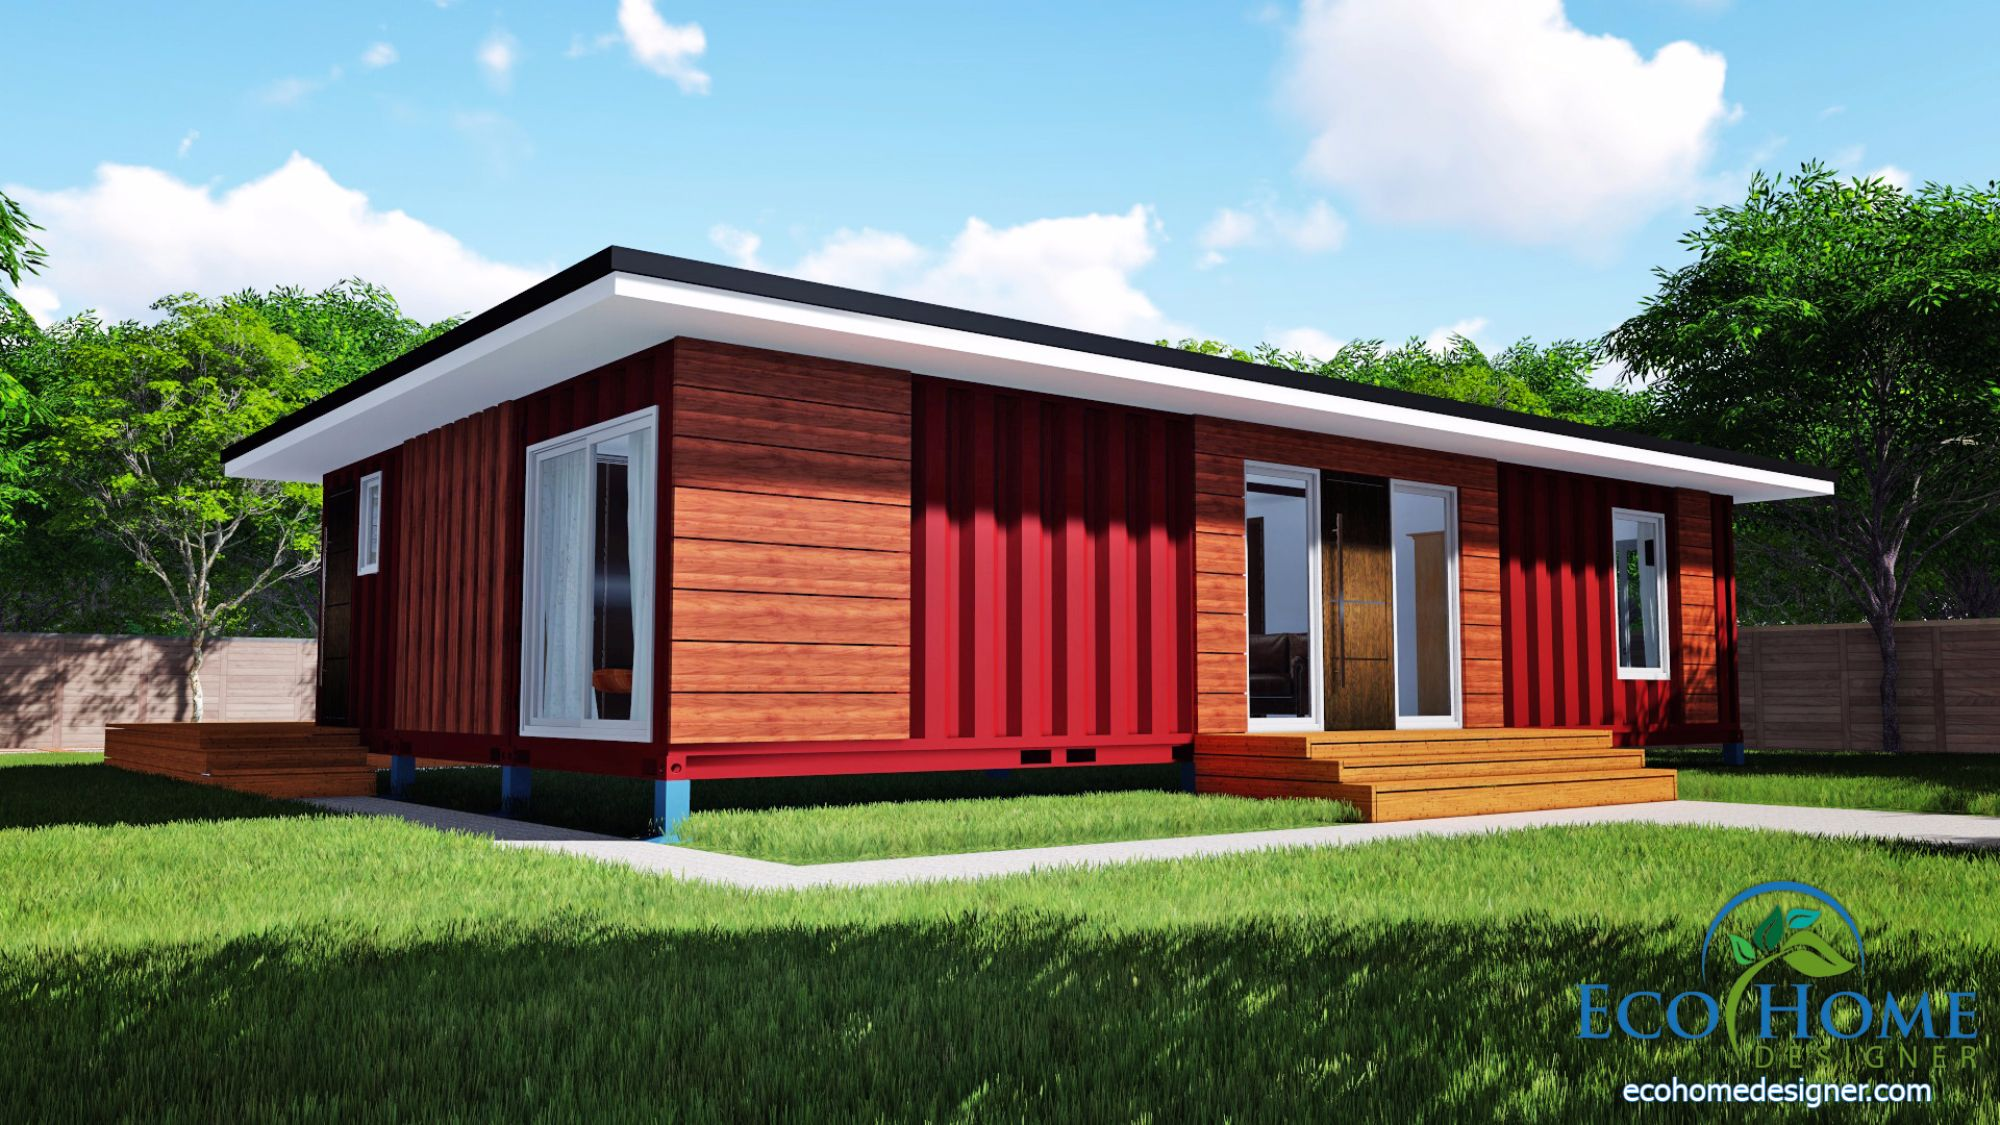 Sch11 3 x 40ft 2 bedroom container home plans eco home designer - Ft container home ...